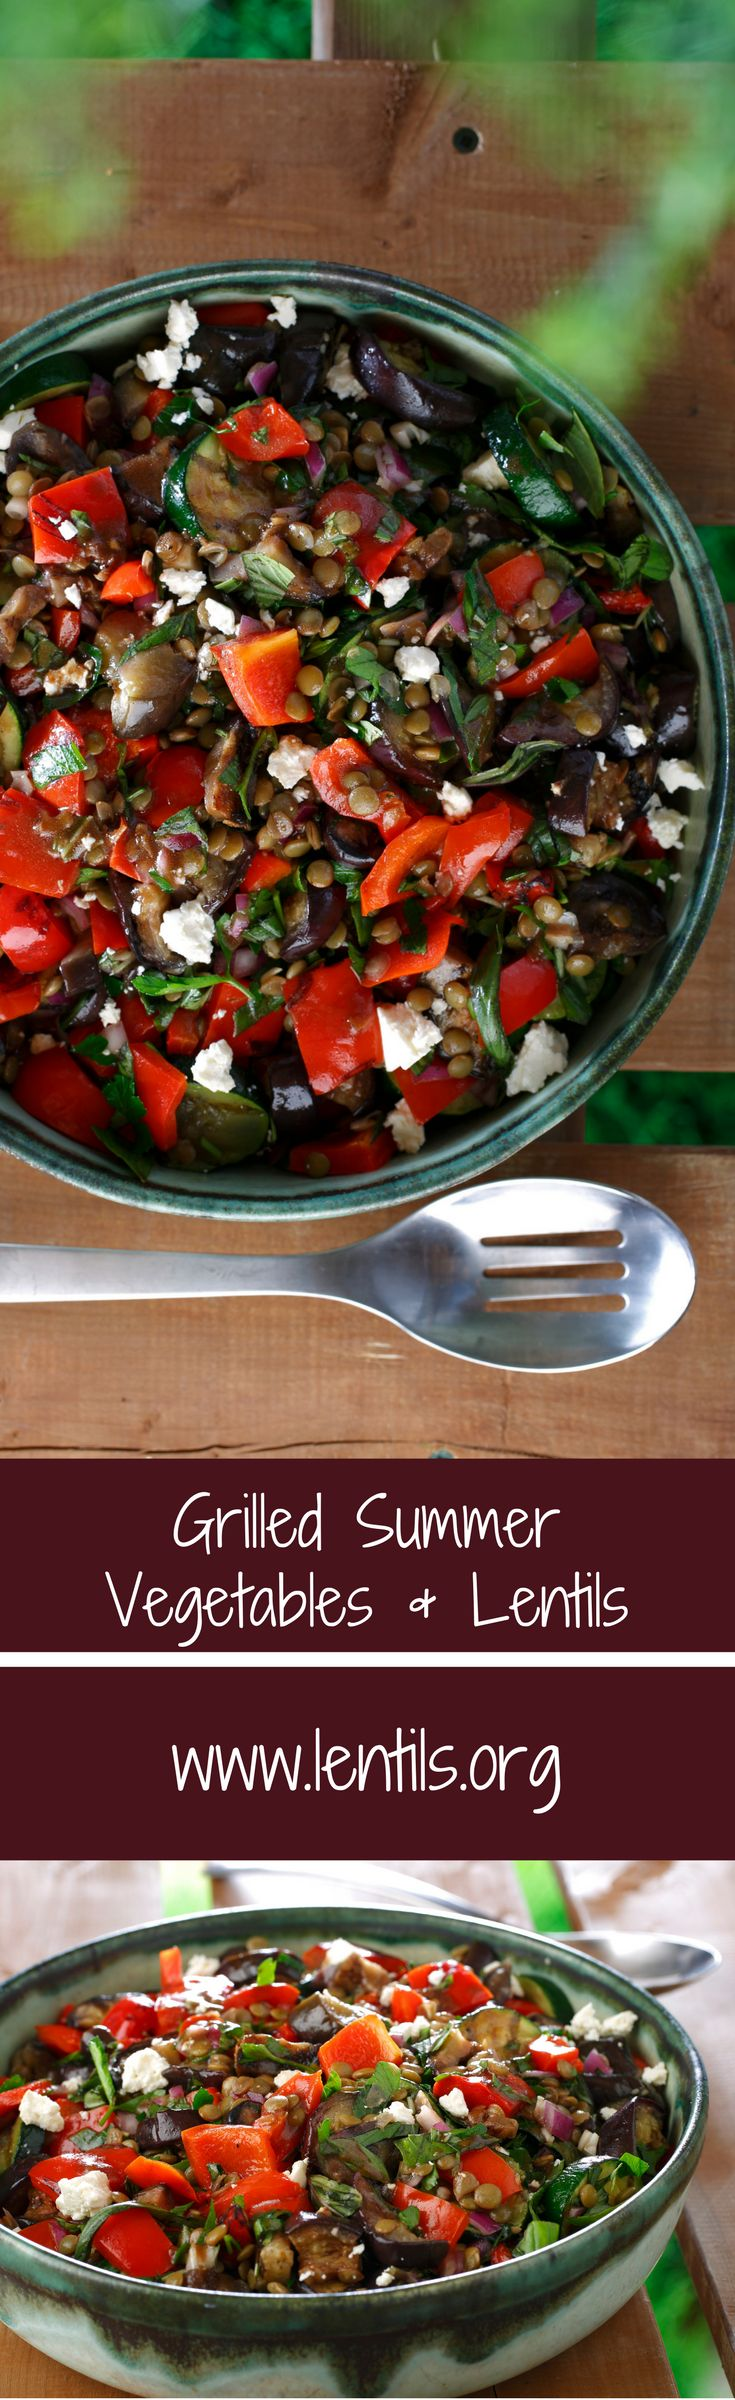 Make the most of garden bounty with grilled vegetables and lentils. Served warm, it is a lovely side dish for a backyard barbecue.